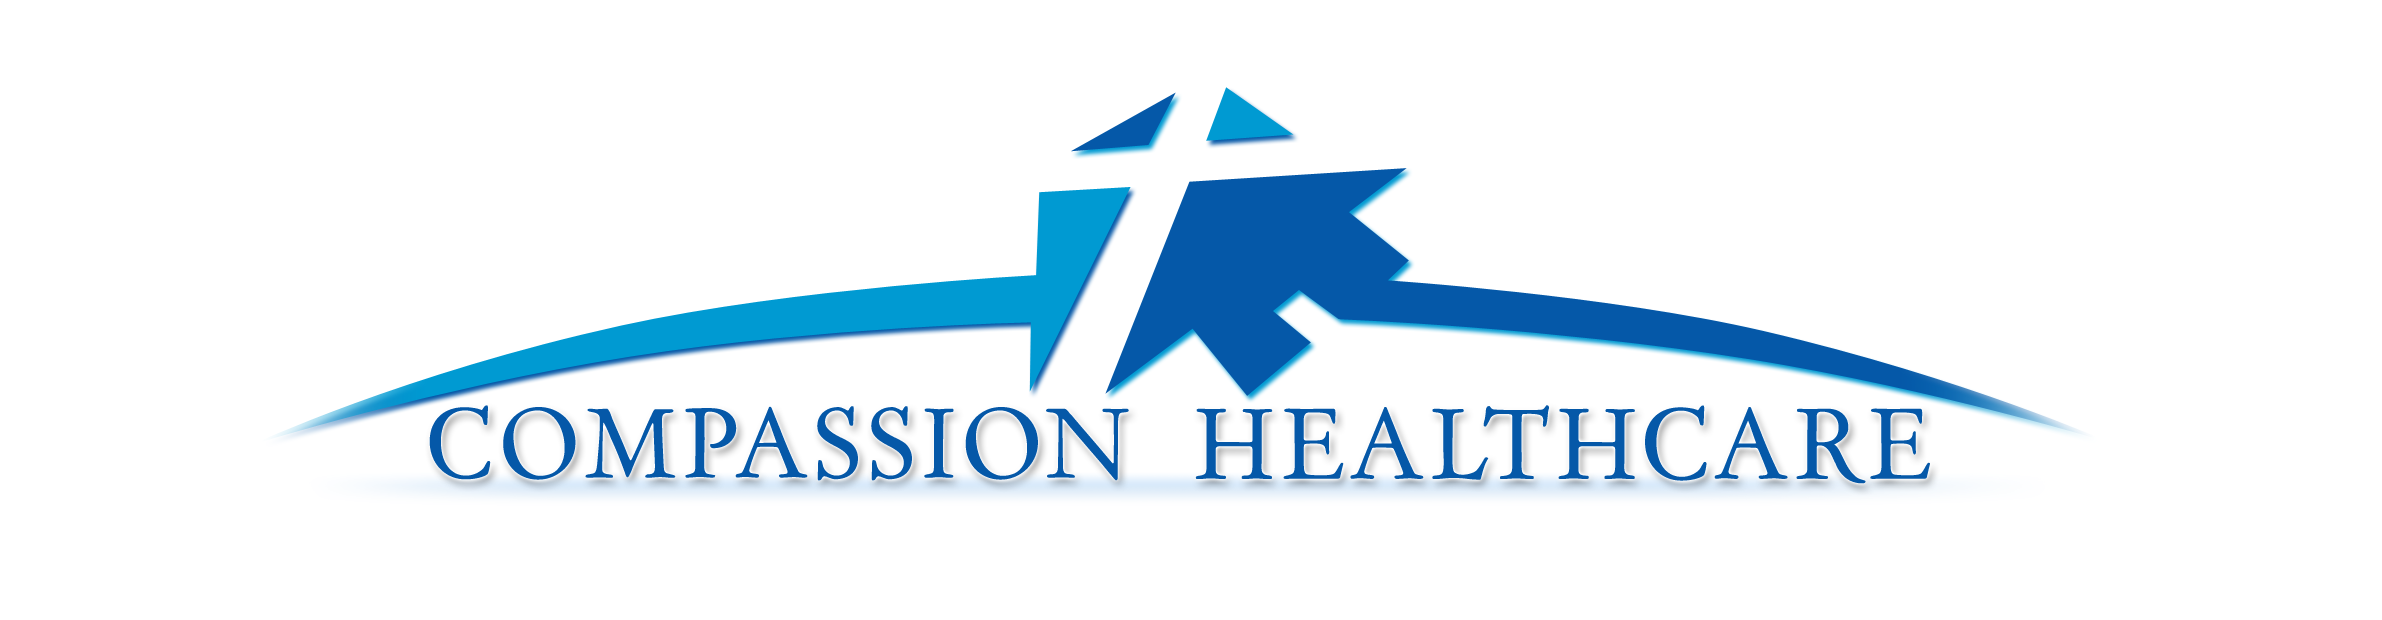 Compassion Healthcare Personal Care Assistant Job Listing In